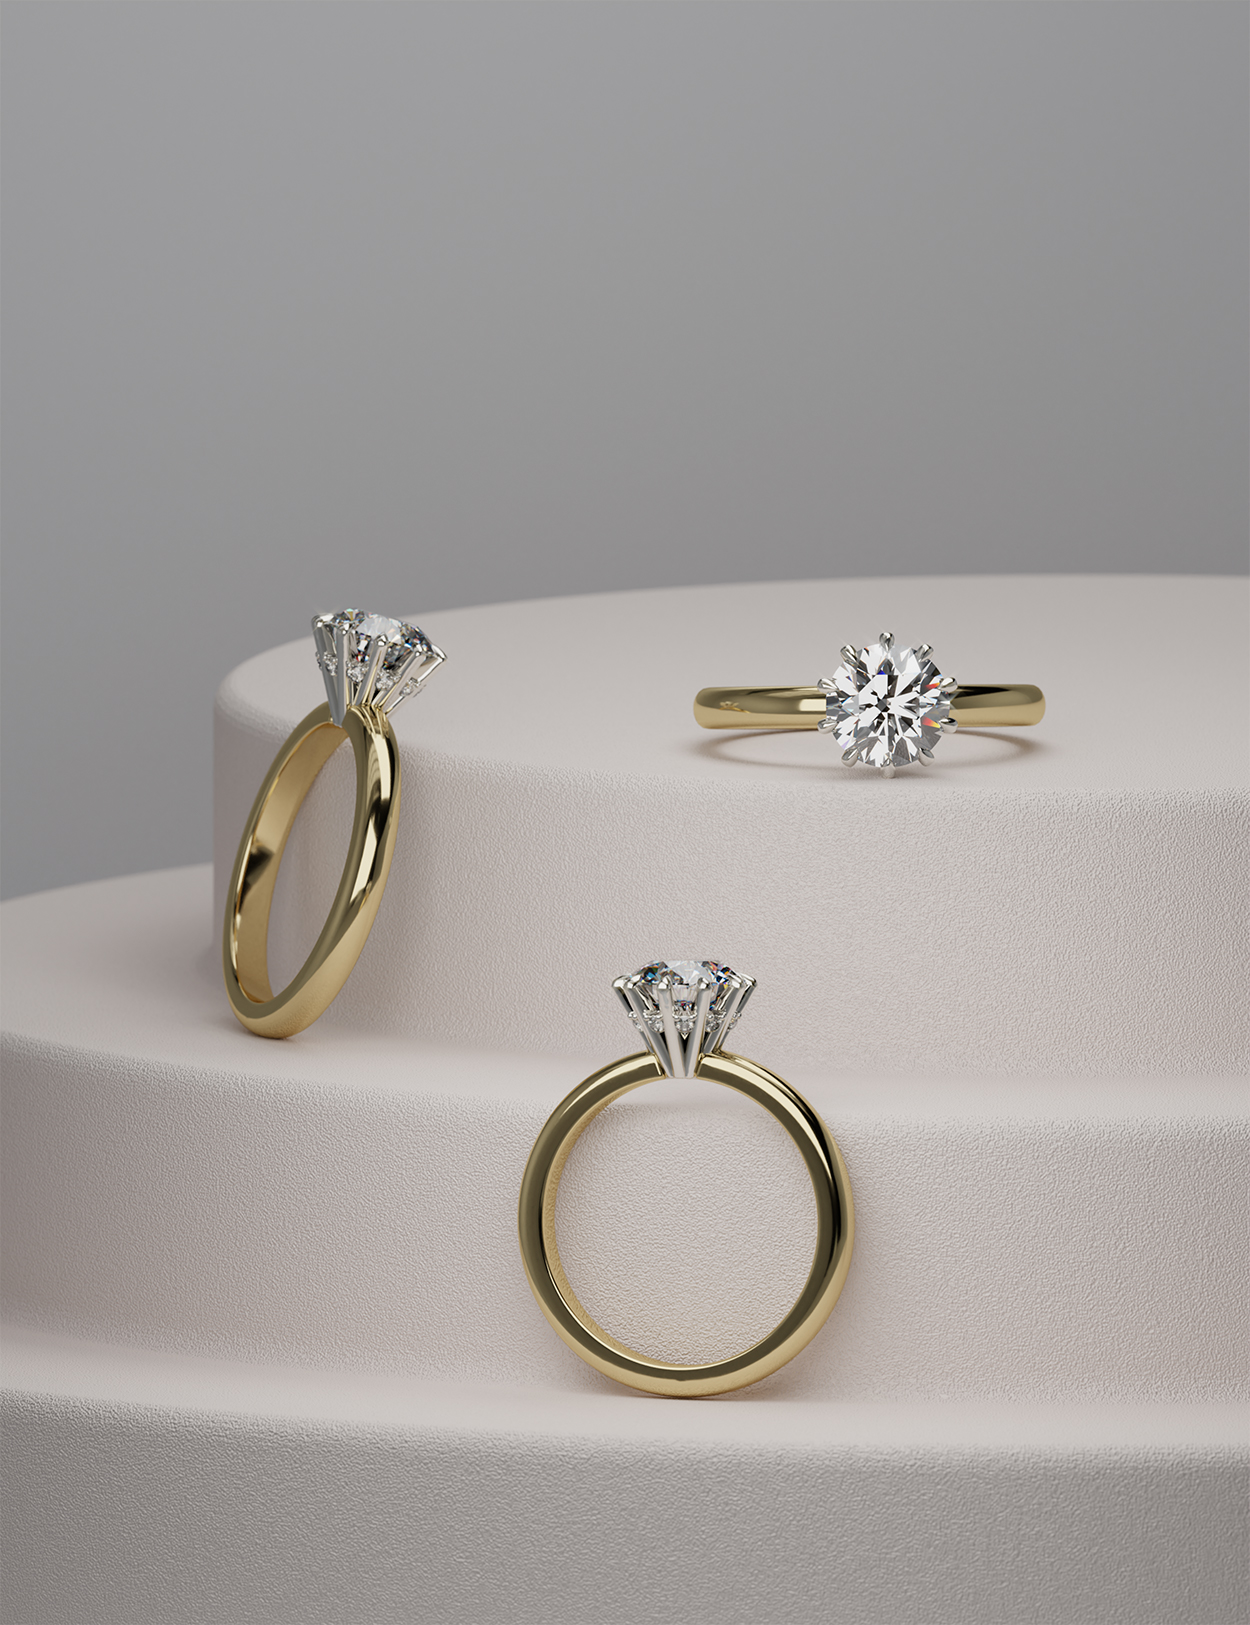 Renders of your ring